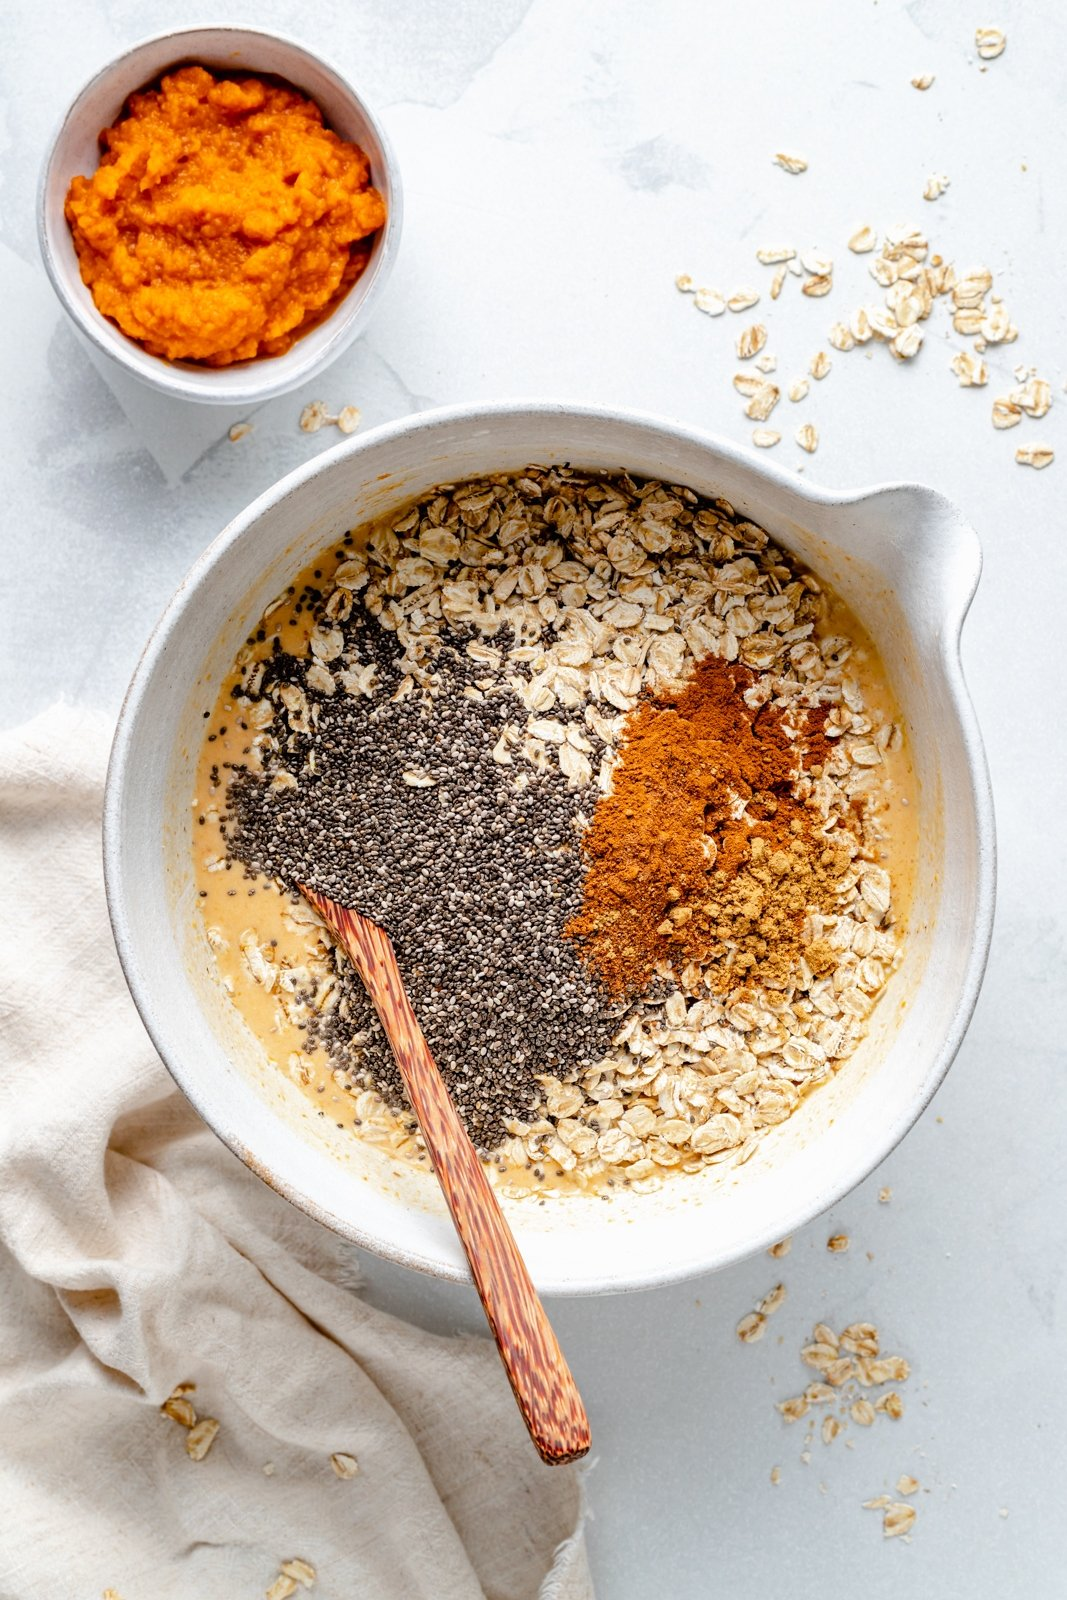 mixing ingredients for overnight oats in a bowl